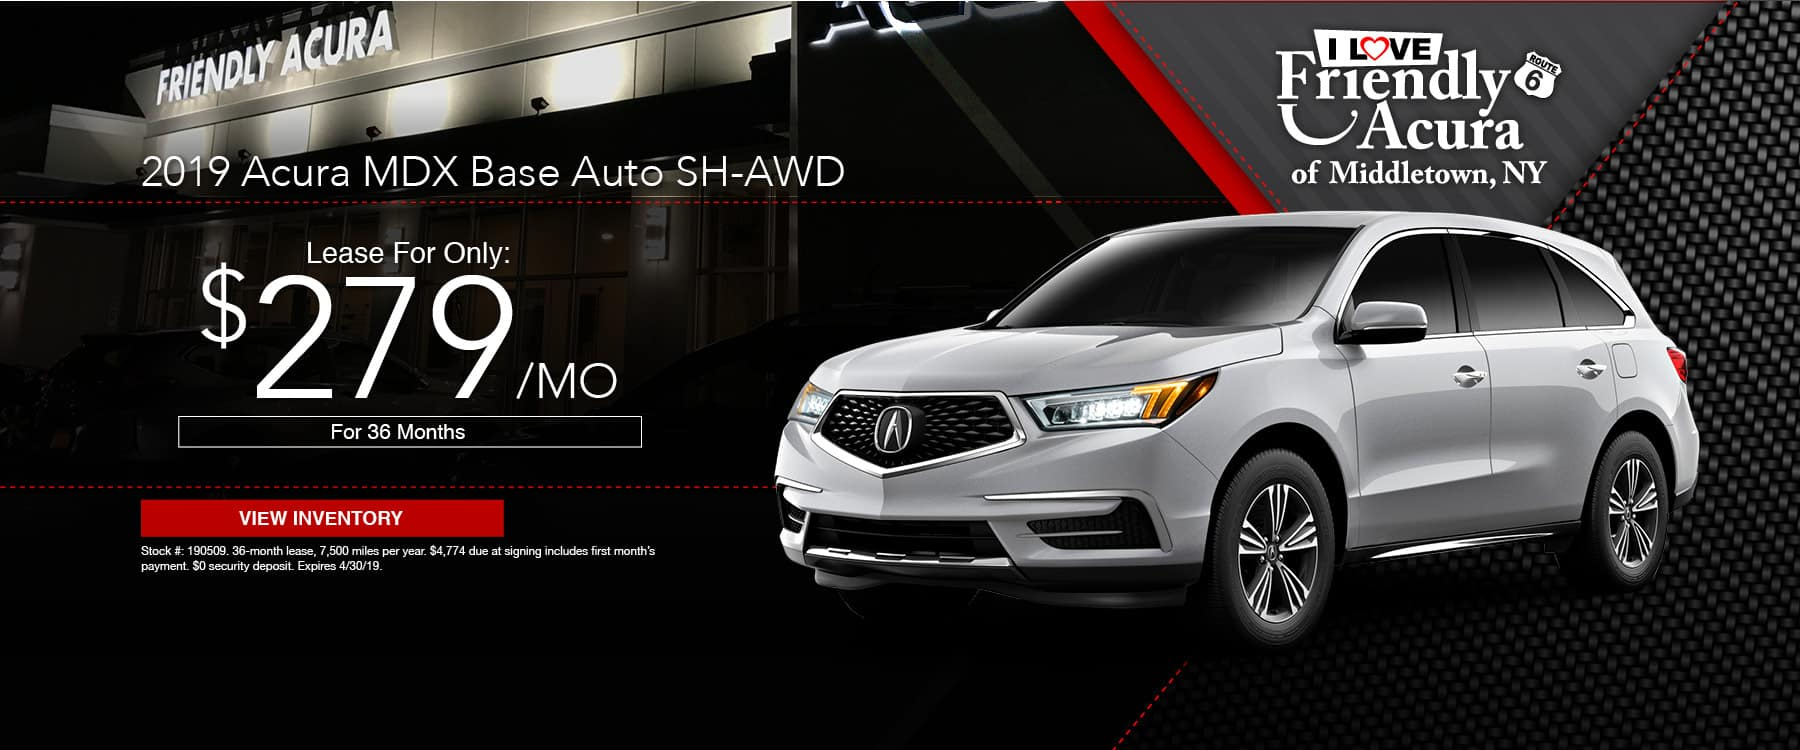 Lease a 2019 Acura MDX from Friendly Acura!